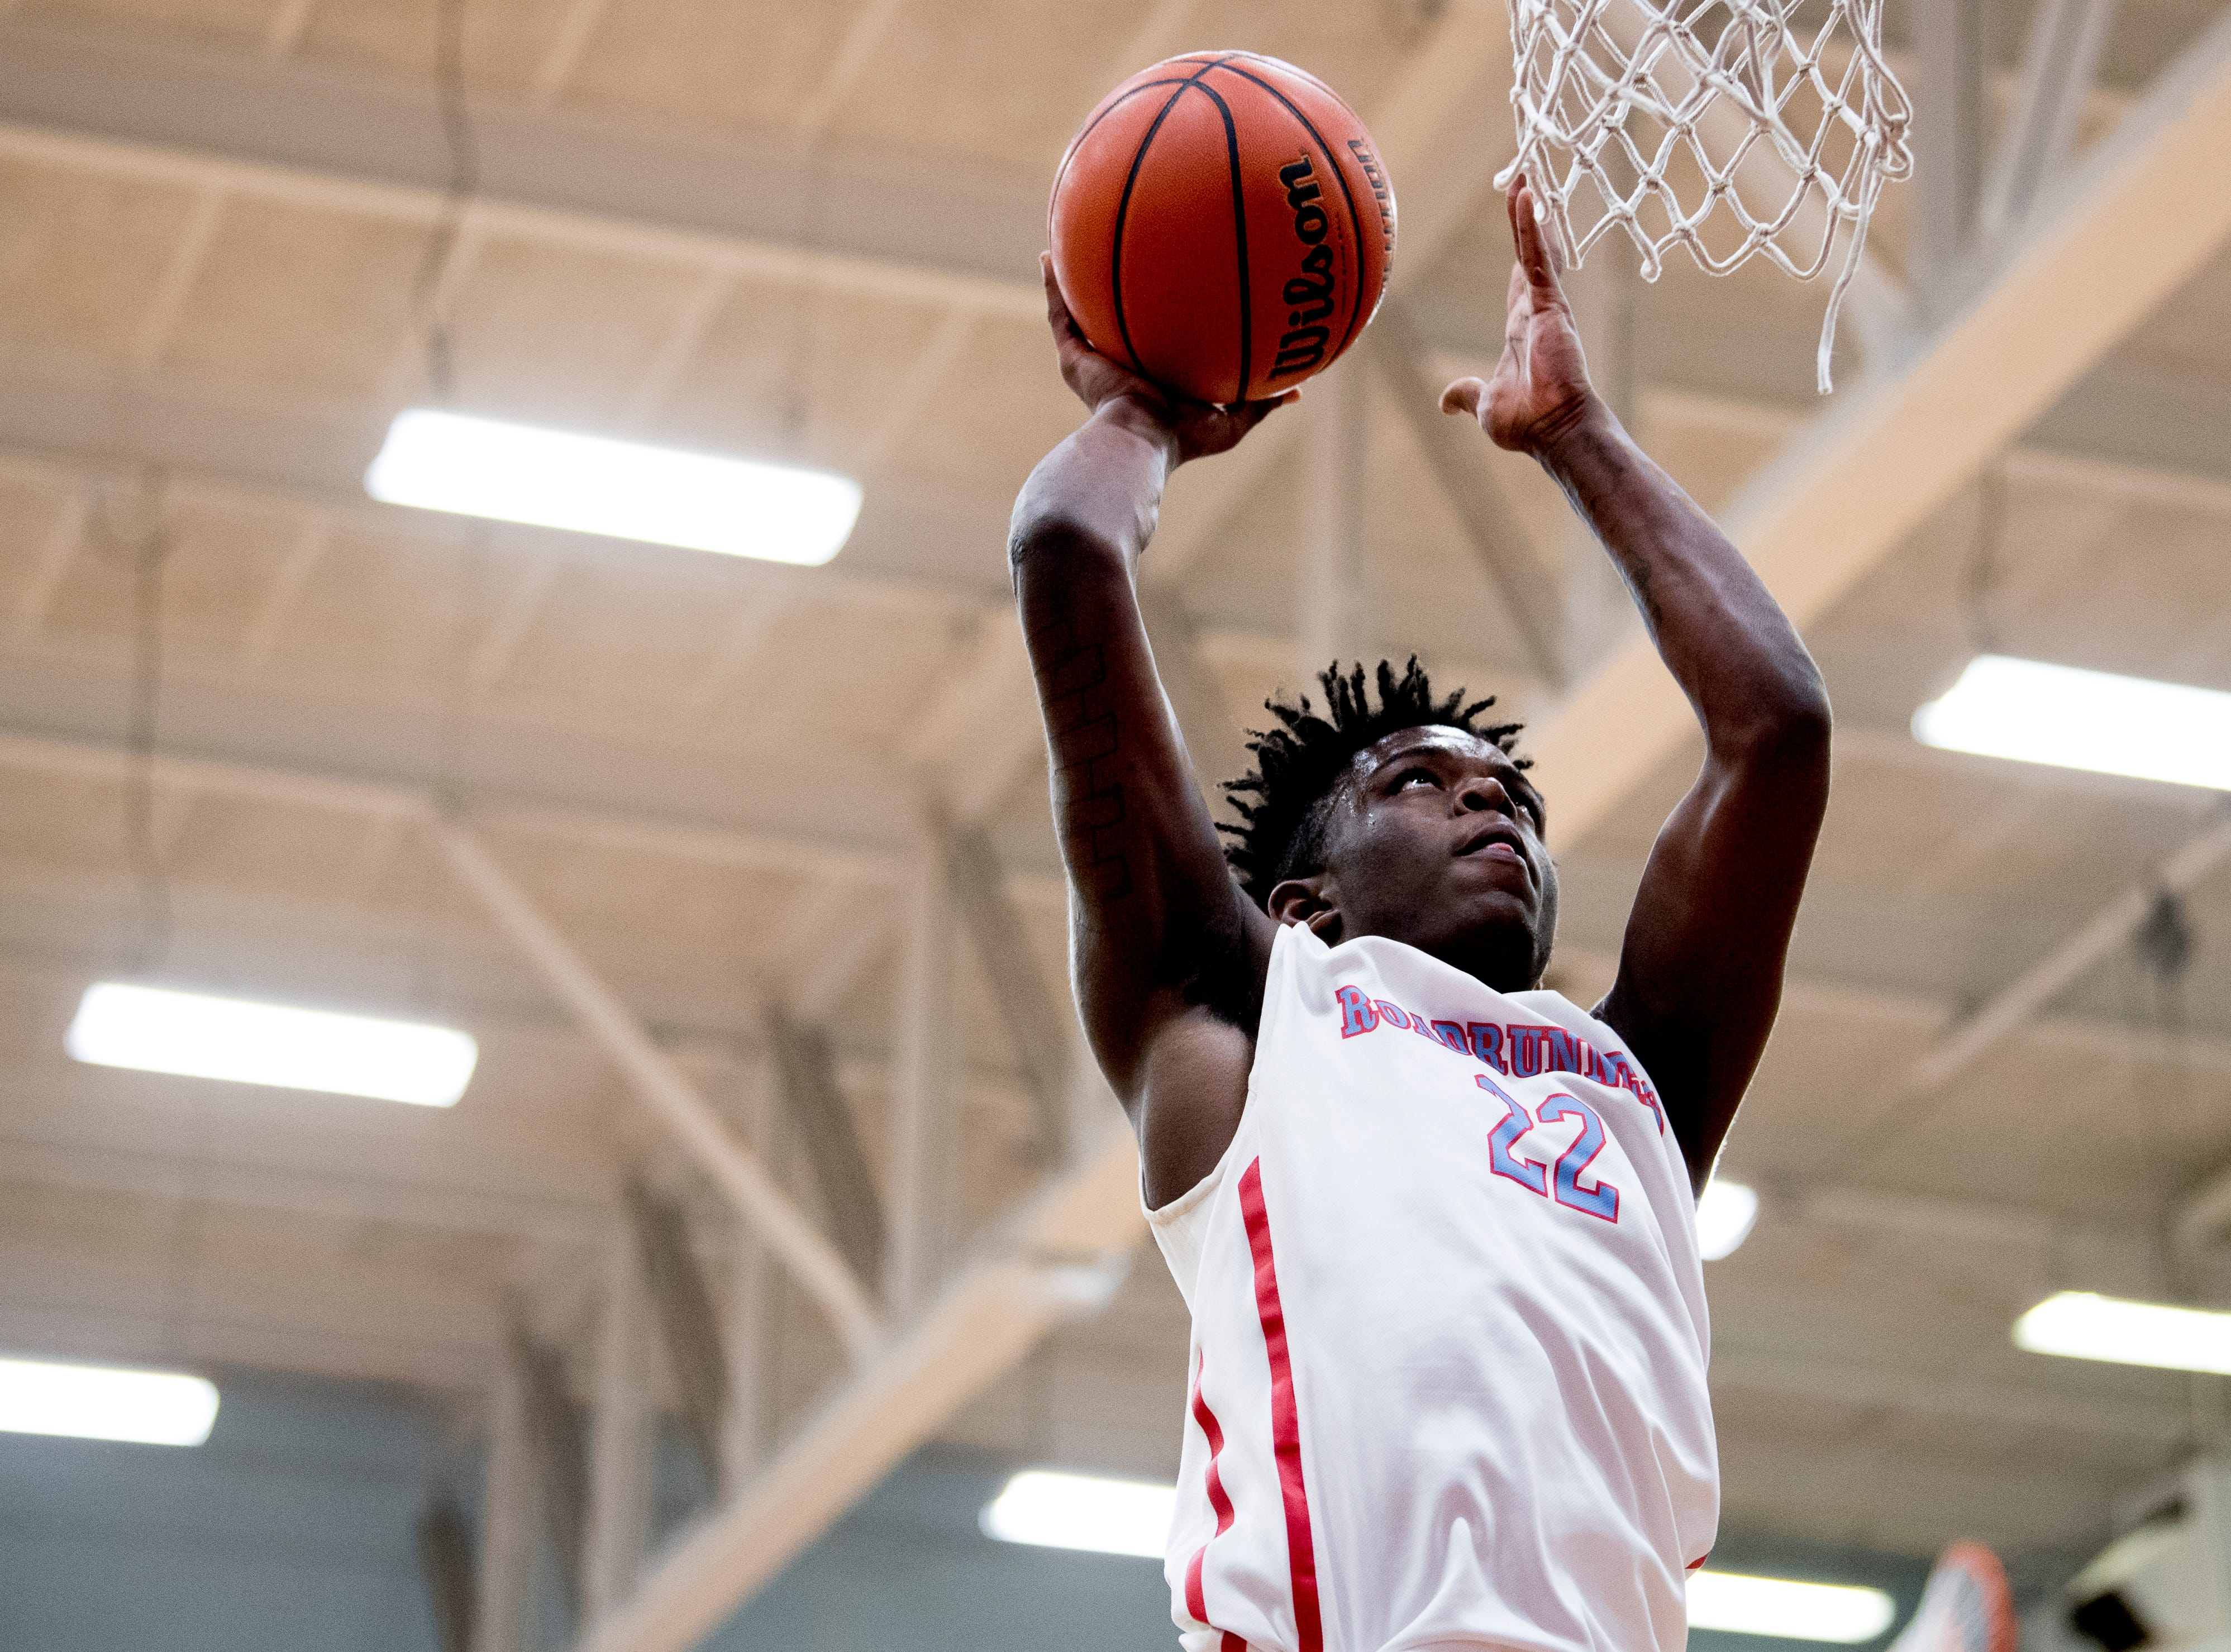 Austin-East's Derrell Upton (22) shoots a point during a game between Austin-East and Alcoa at Austin-East High School in Knoxville, Tennessee on Friday, January 18, 2019.